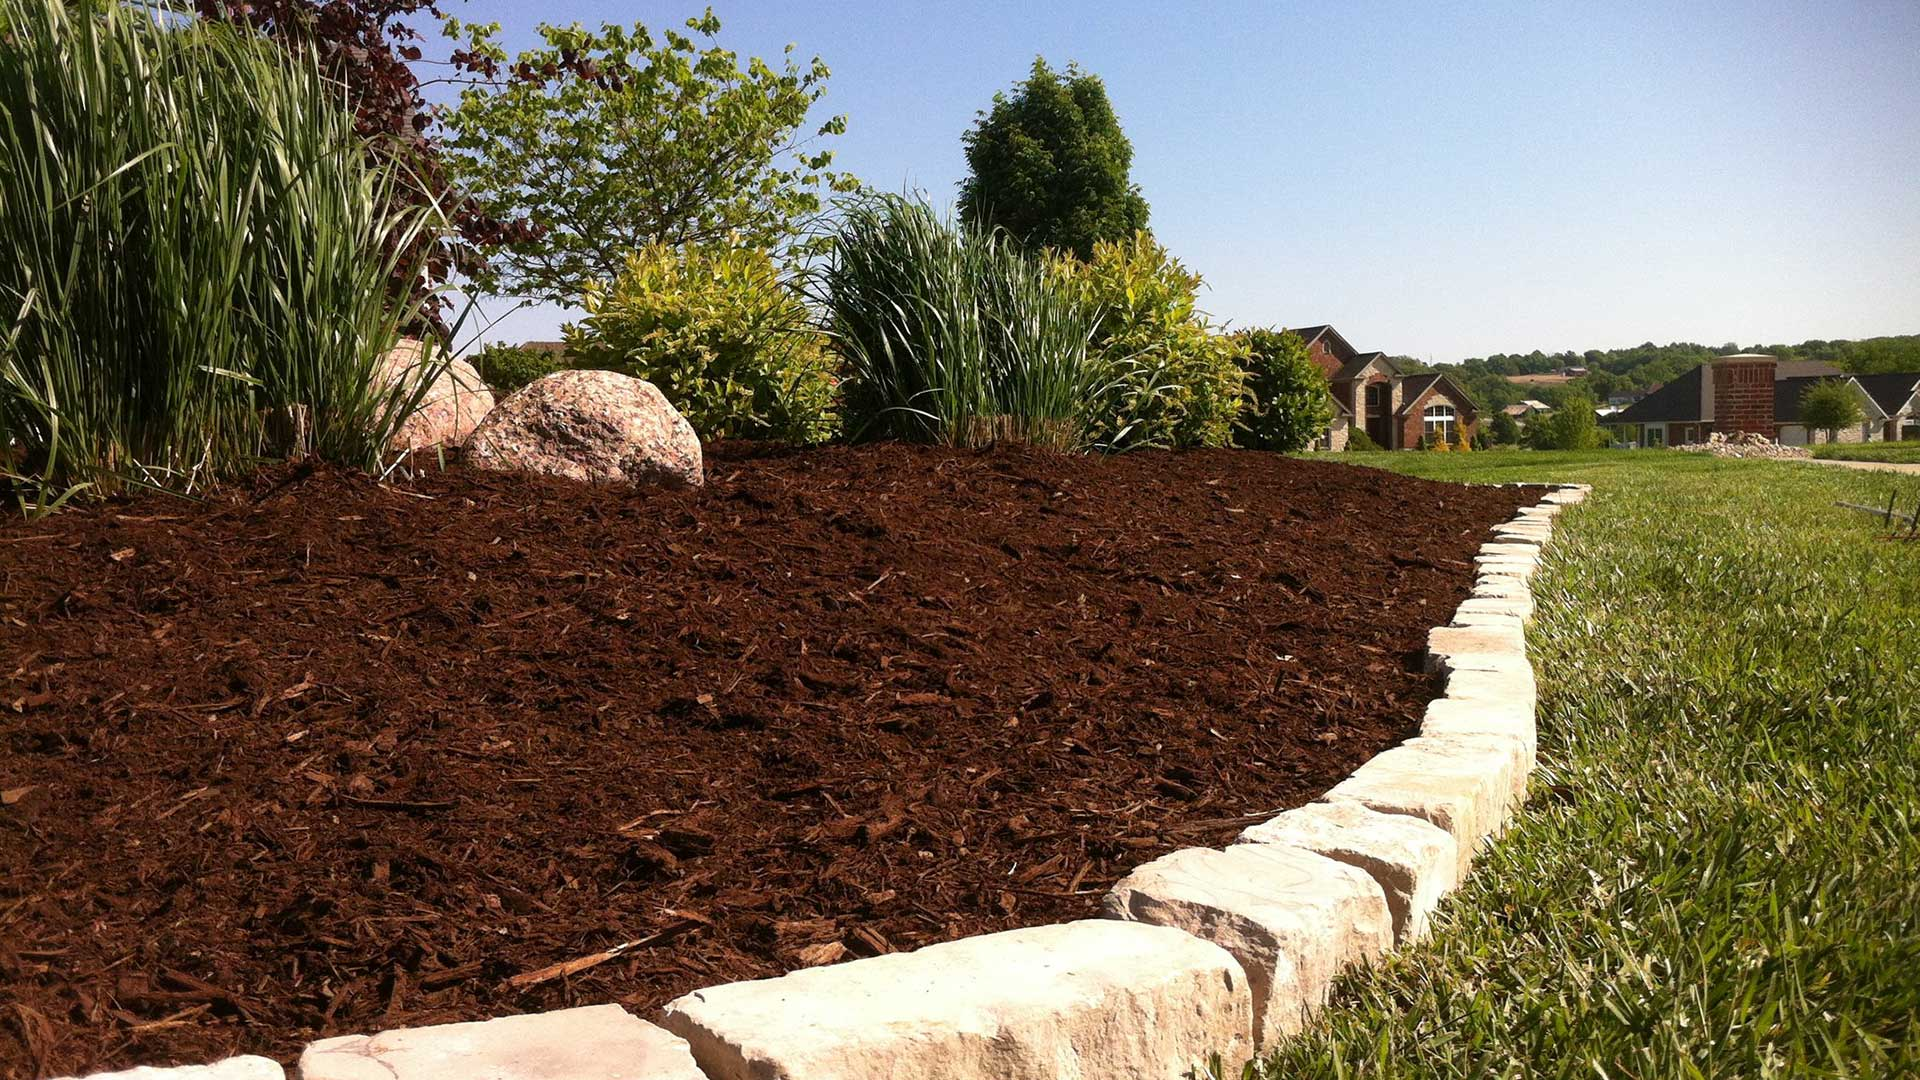 A new landscape bed installed for a property in Columbia, IL.